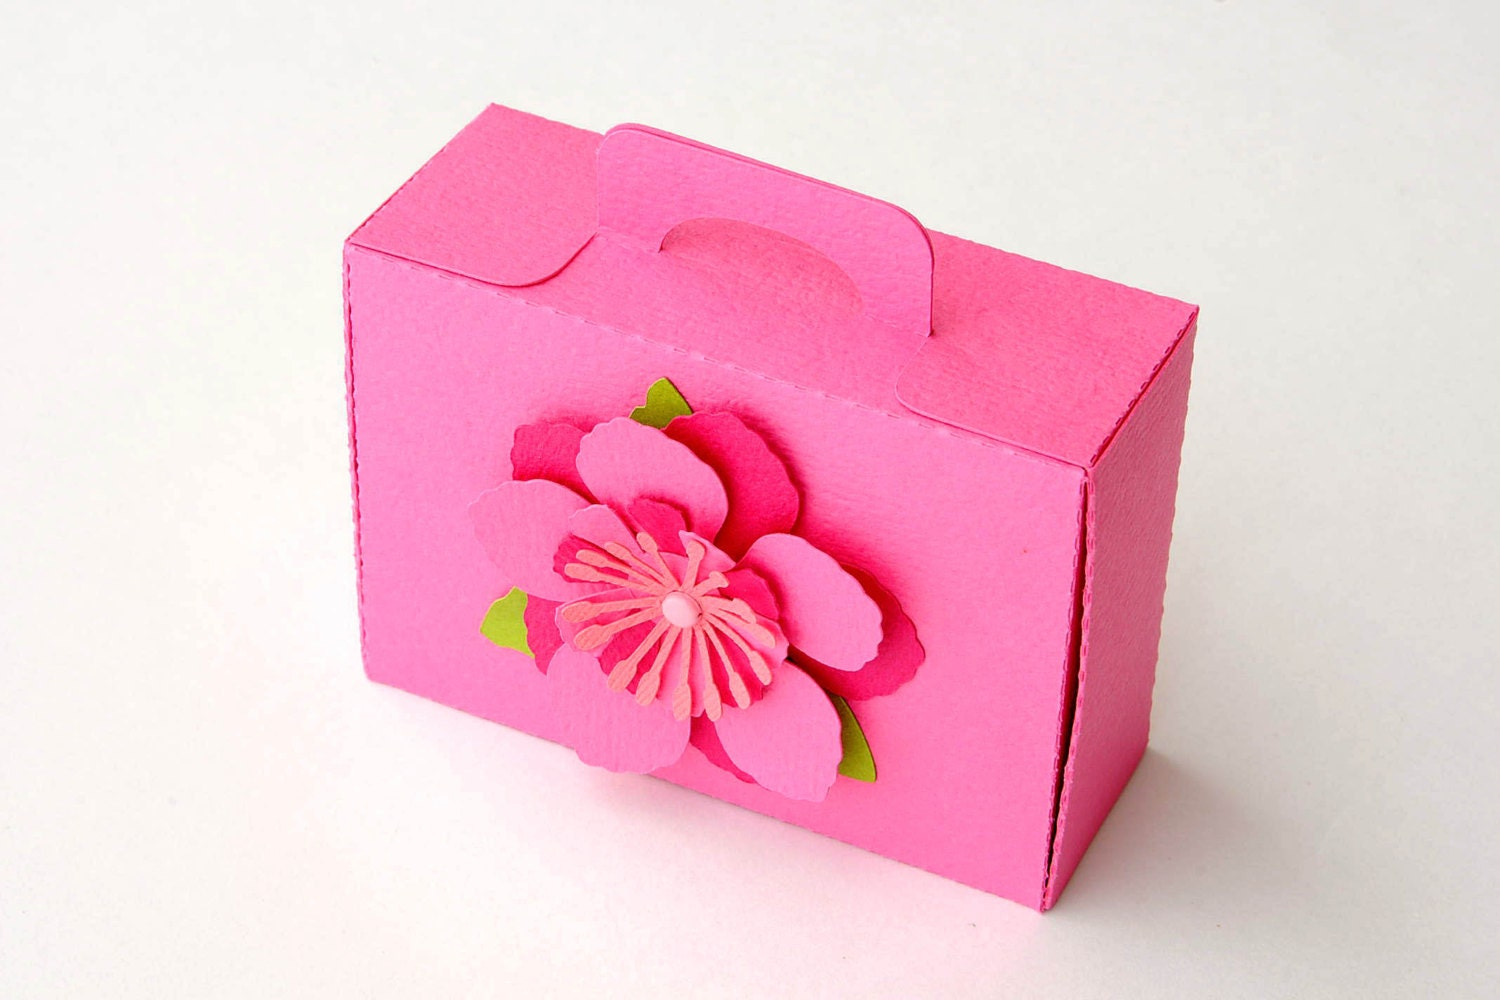 Set of 10 Mini Pink Flower Beach Suitcase Box / Luggage Box